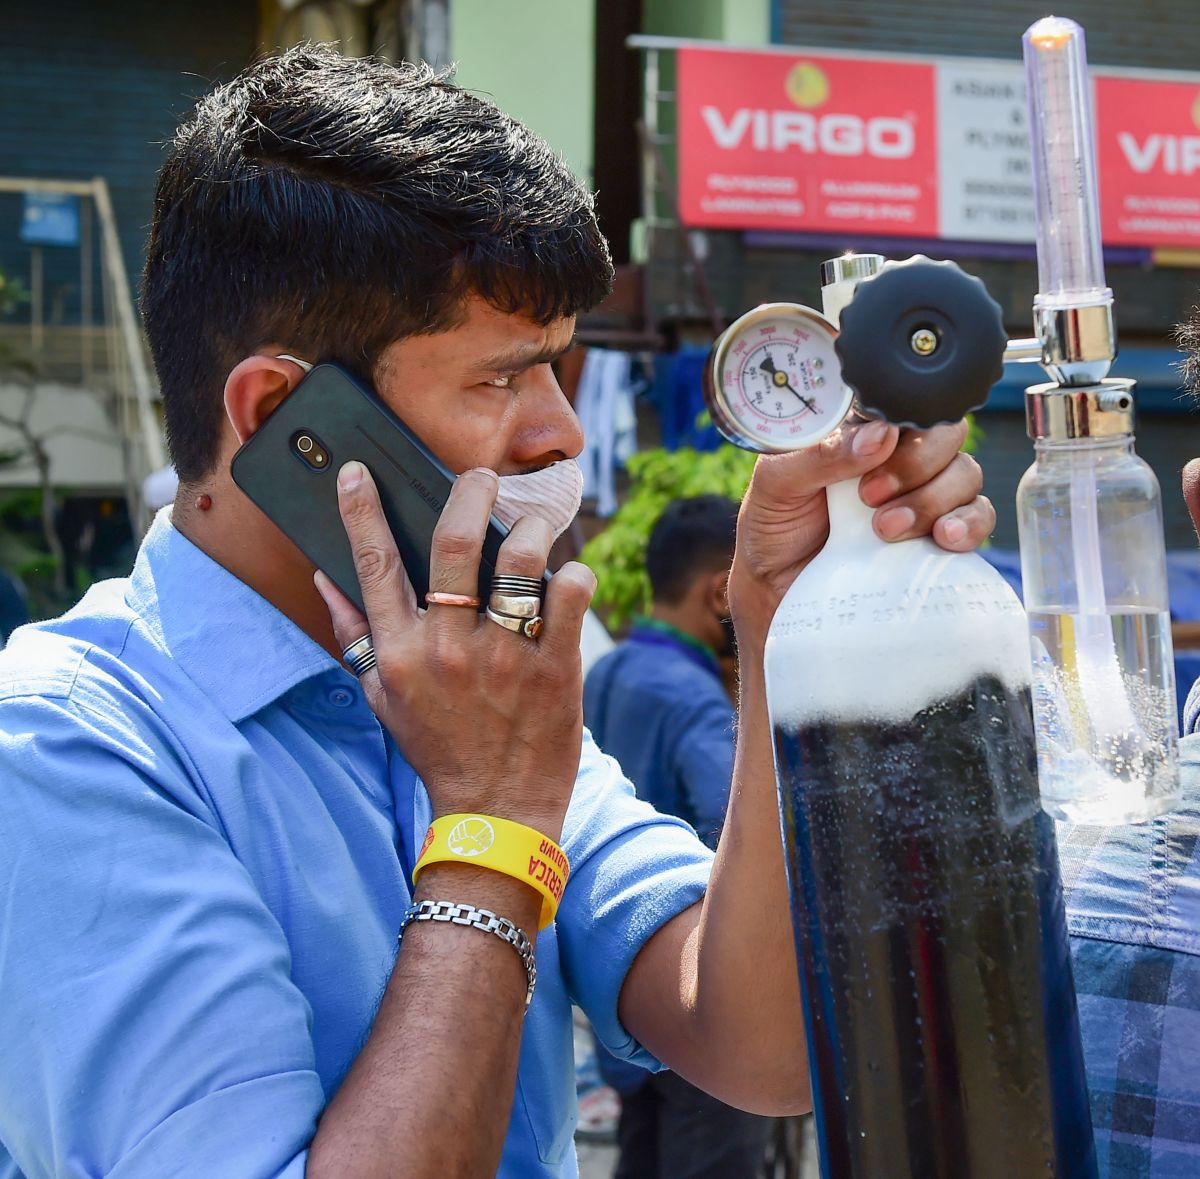 Delhi exaggerated Oxygen demand by 4 times: SC told